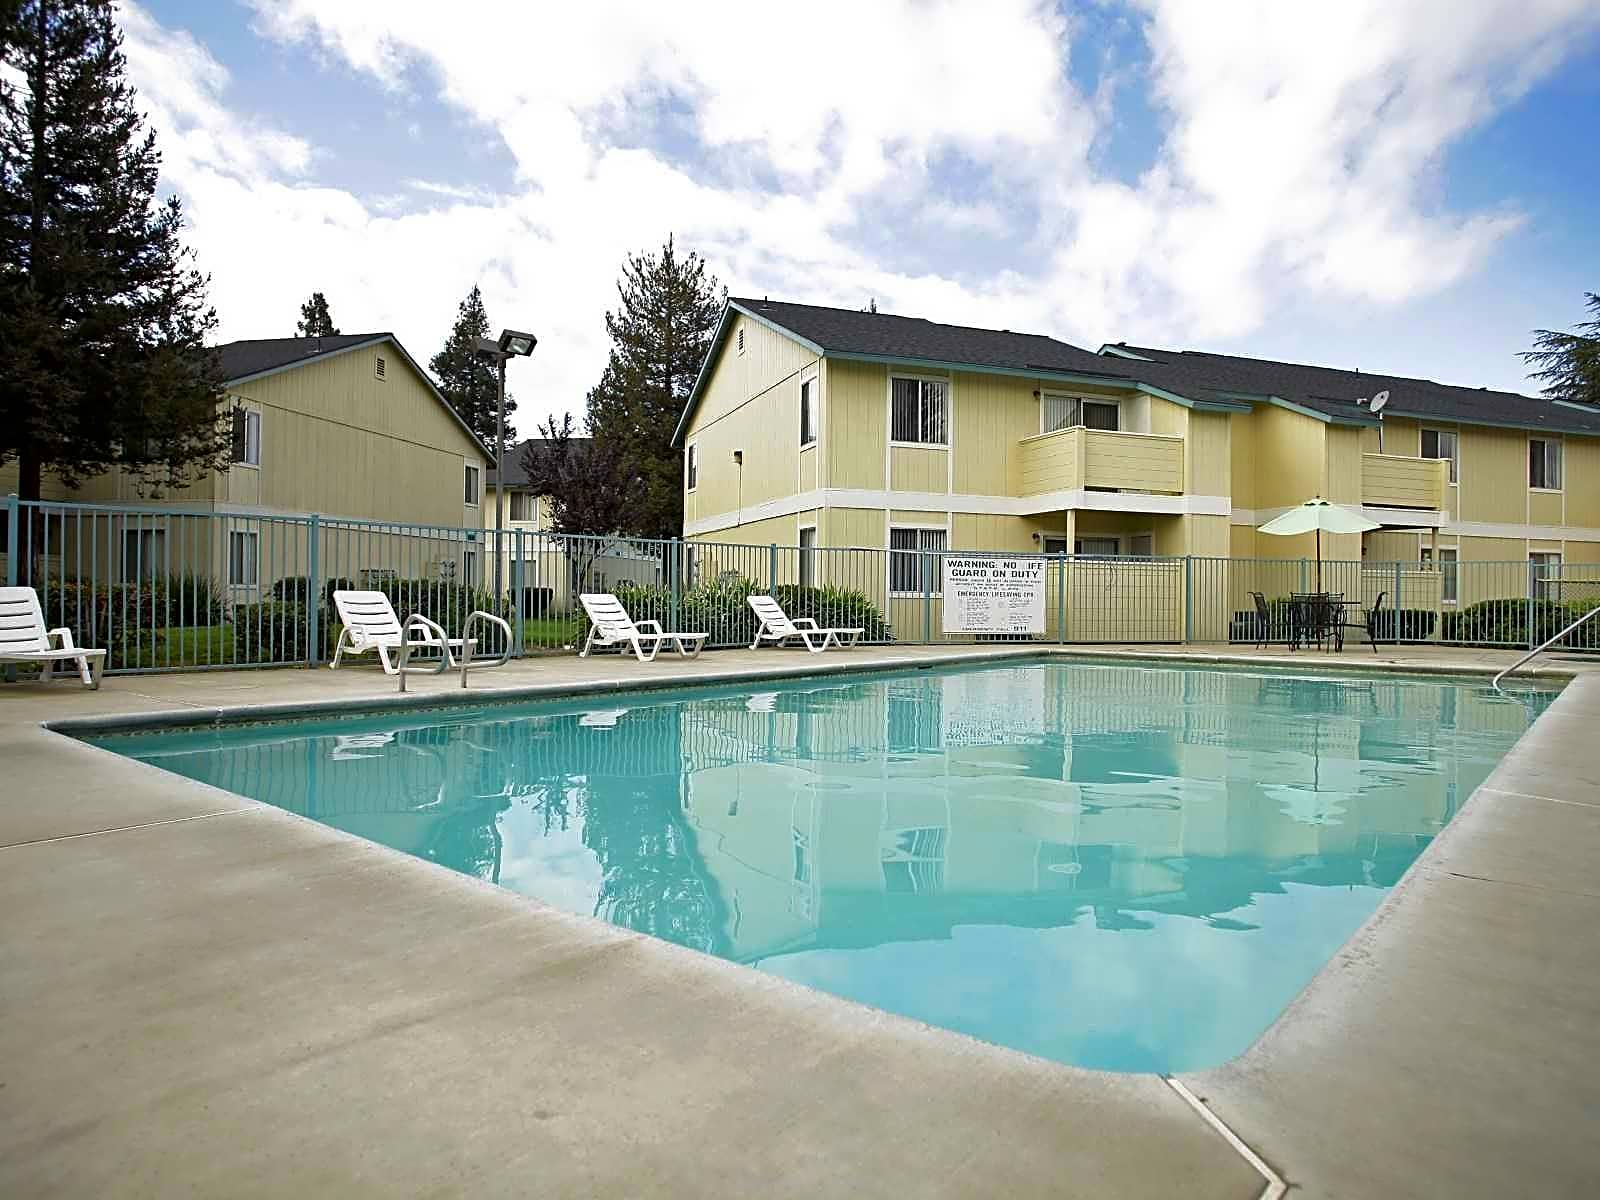 Pine Ridge for rent in Modesto